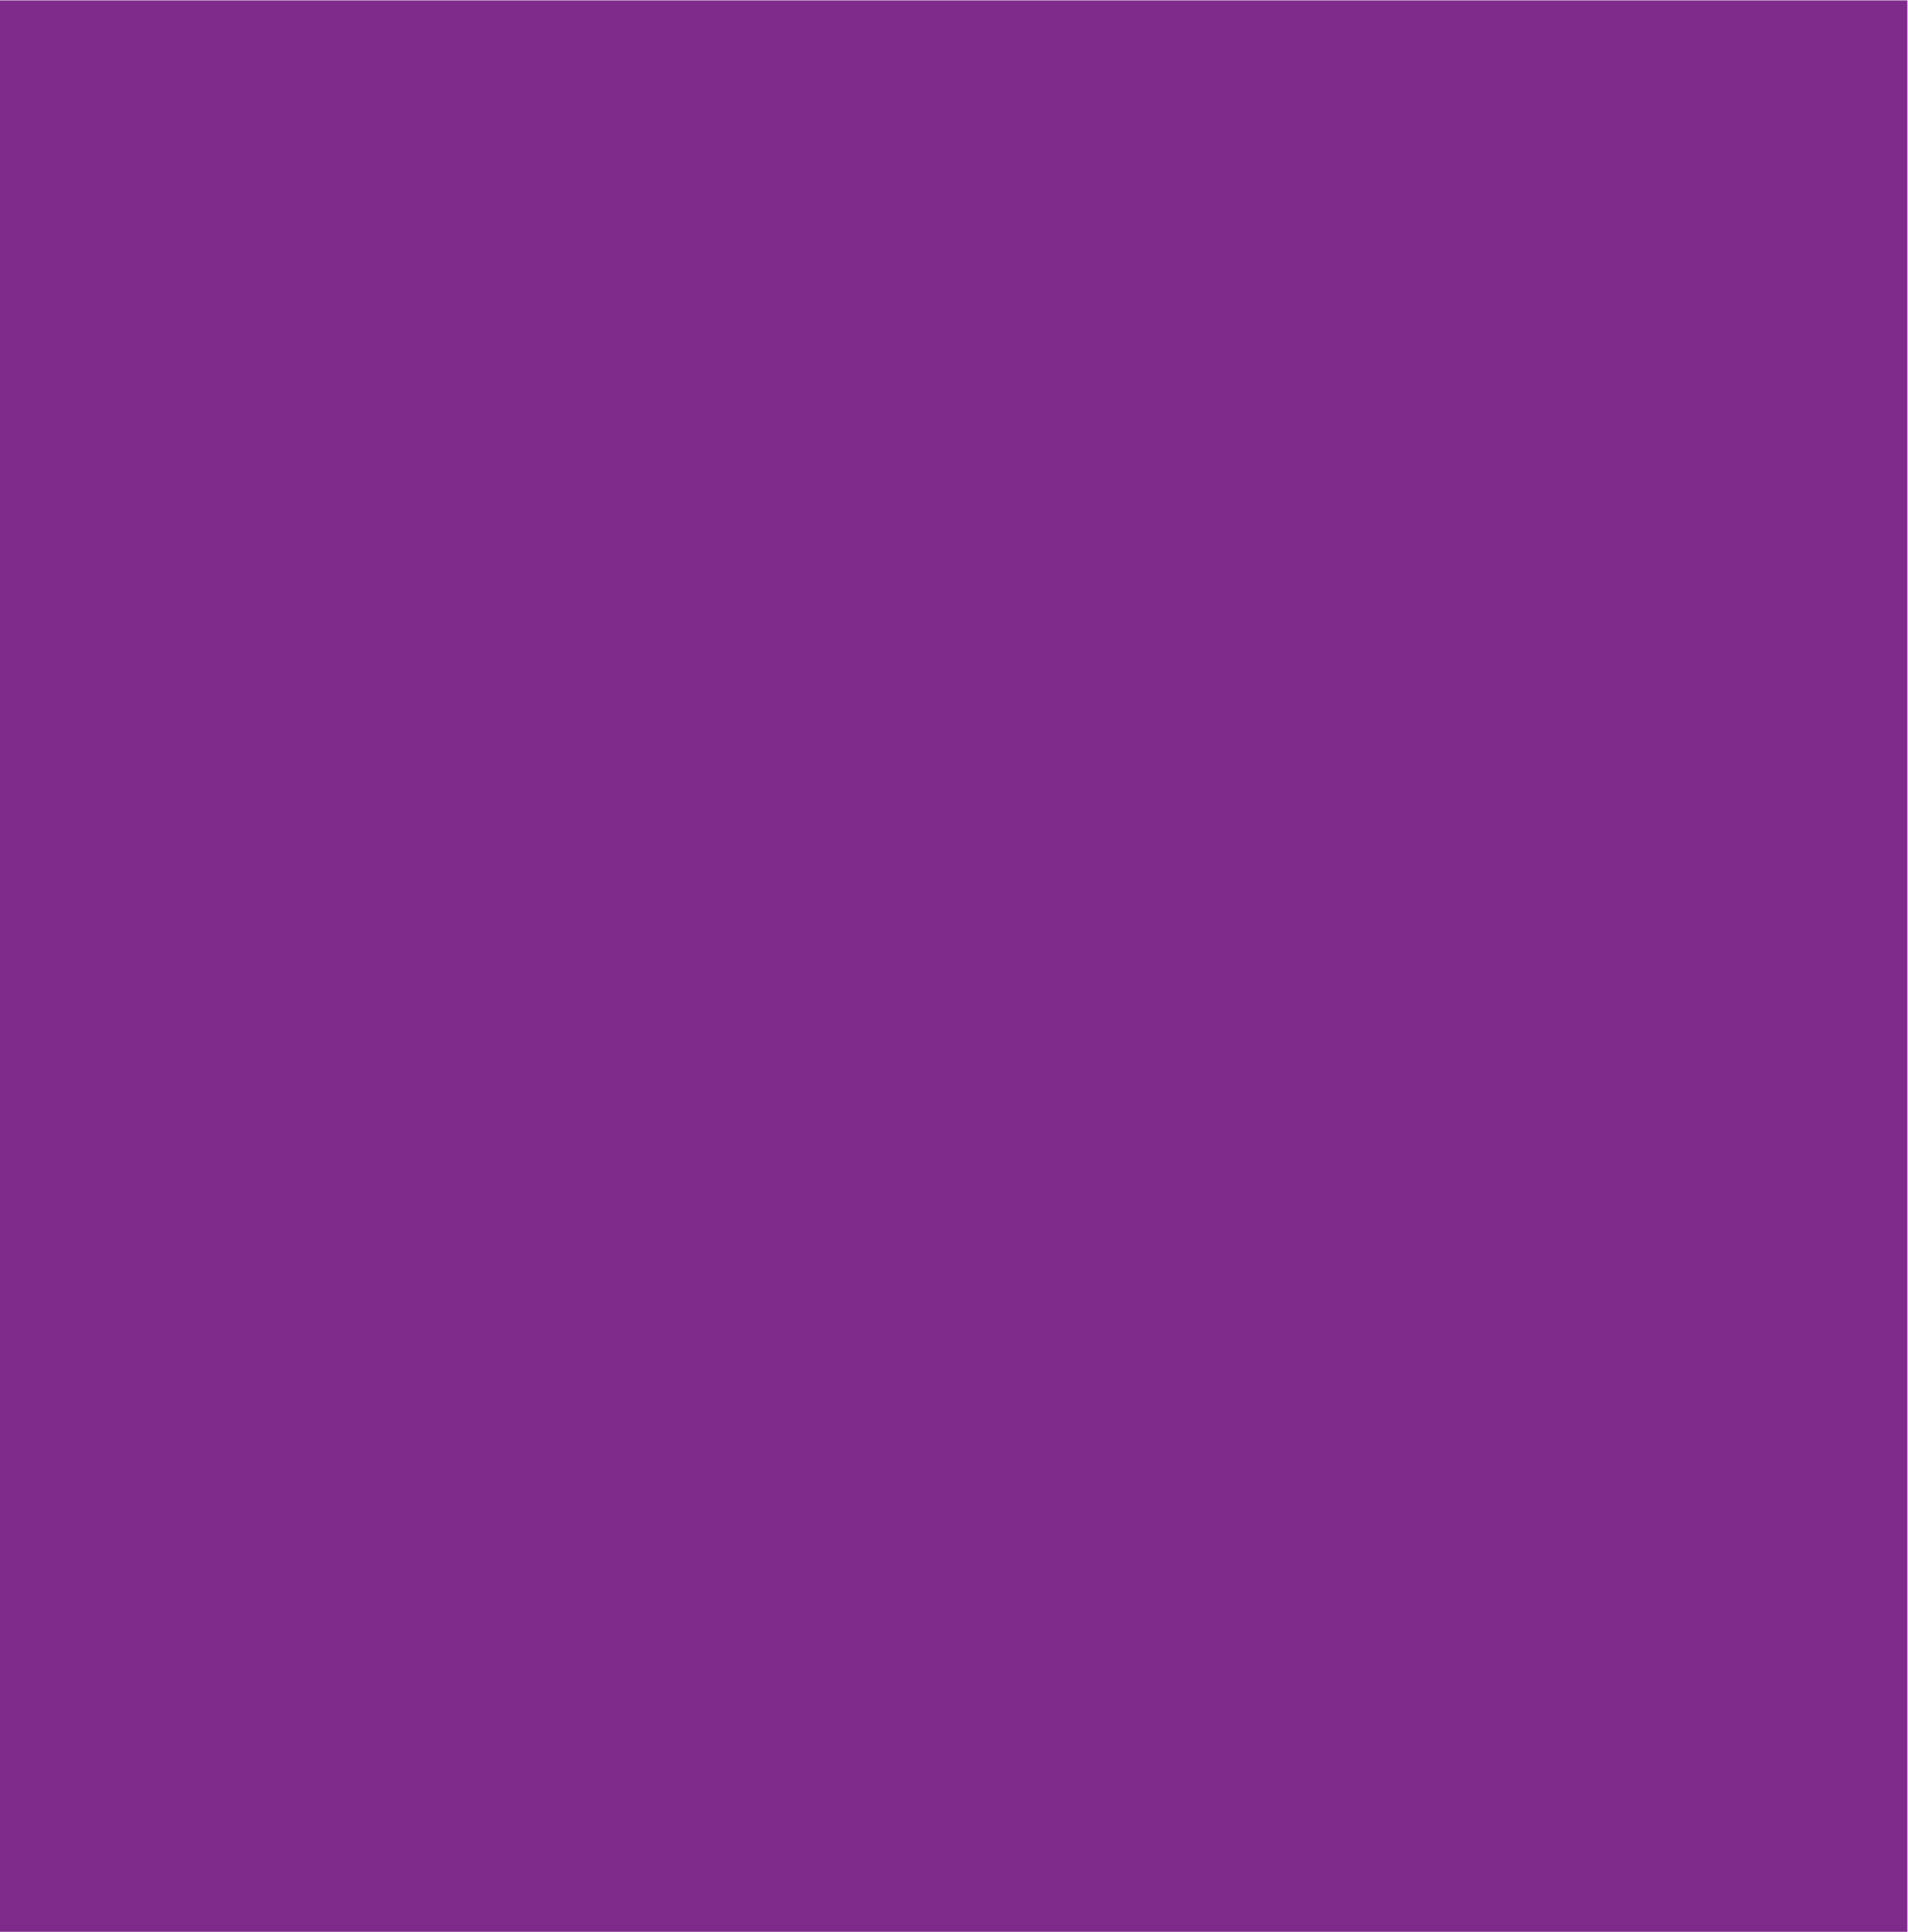 Dark purple from the secondary color palette.